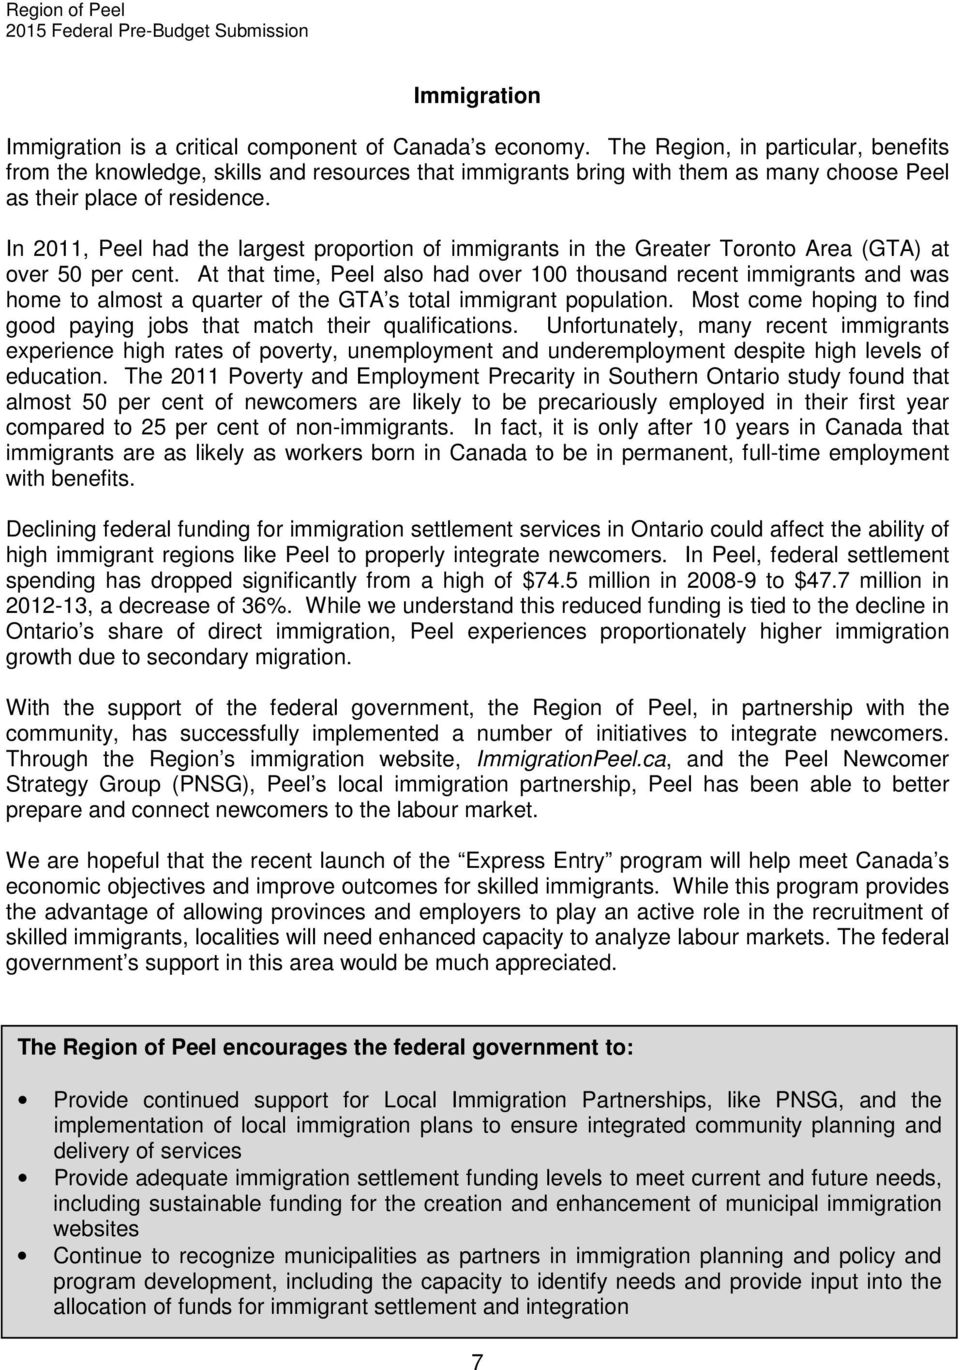 In 2011, Peel had the largest proportion of immigrants in the Greater Toronto Area (GTA) at over 50 per cent.